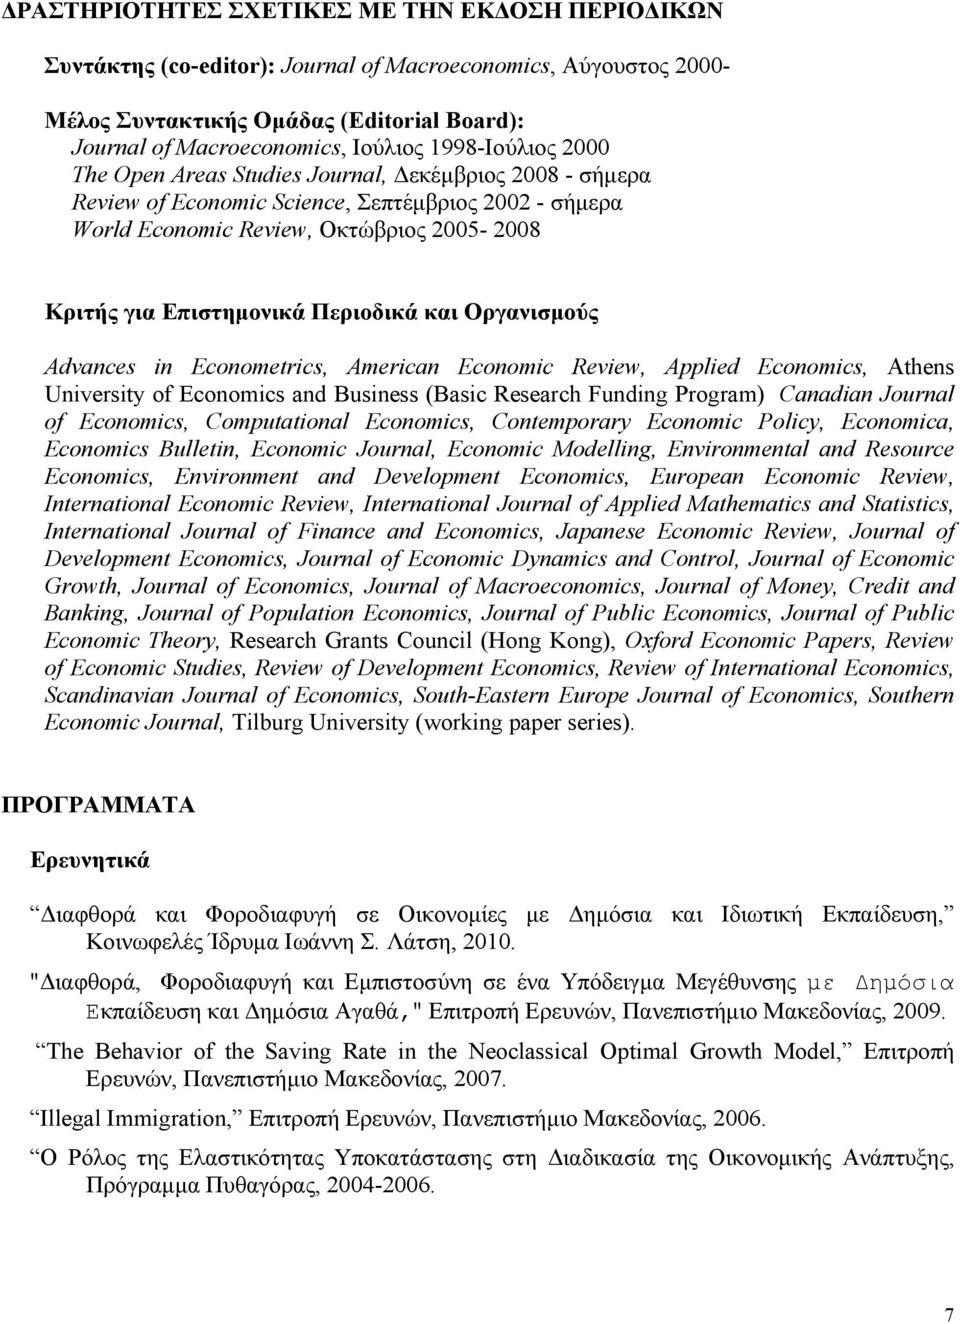 Περιοδικά και Οργανισμούς Advances in Econometrics, American Economic Review, Applied Economics, Athens University of Economics and Business (Basic Research Funding Program) Canadian Journal of